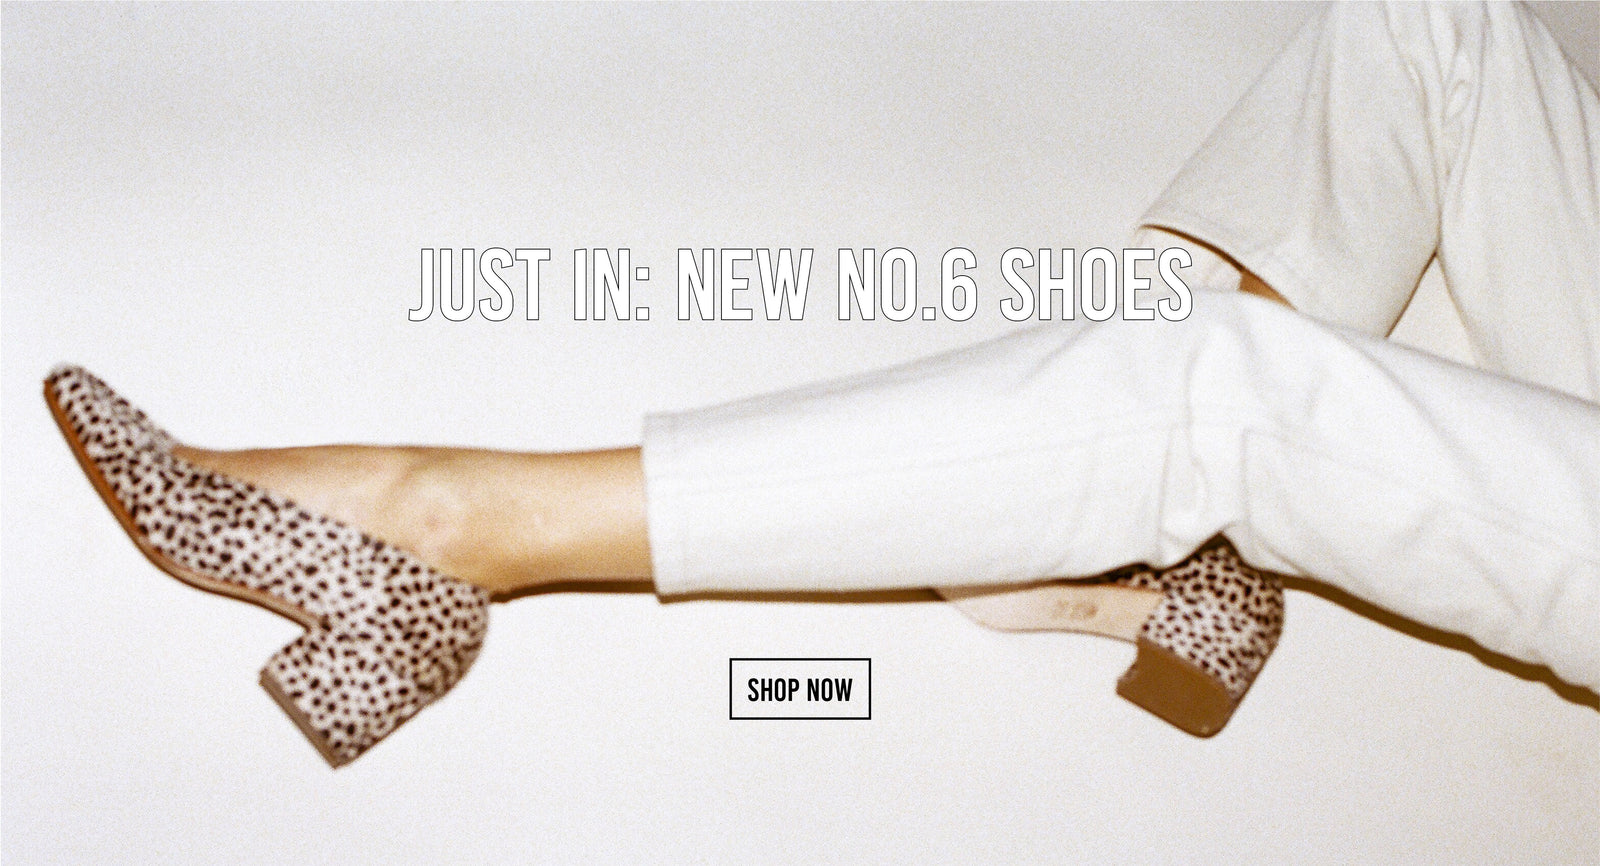 New No.6 Shoes | Pony Hair Heels | Metallic Pumps | Contemporary Women's Shoes | No.6 Store